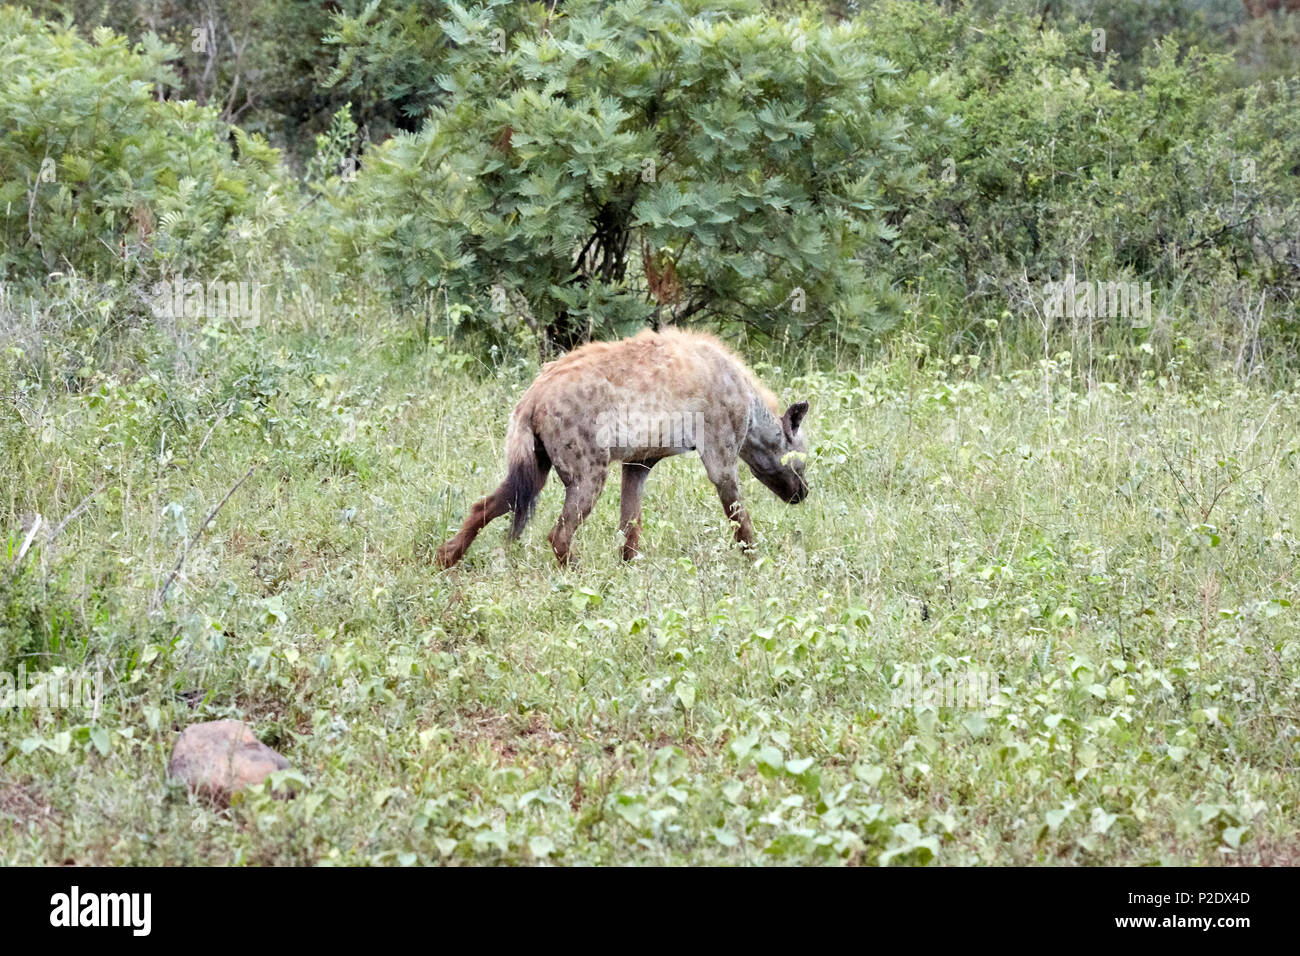 Hyena in Kruger National Park Game Reserve South Africa - Stock Image